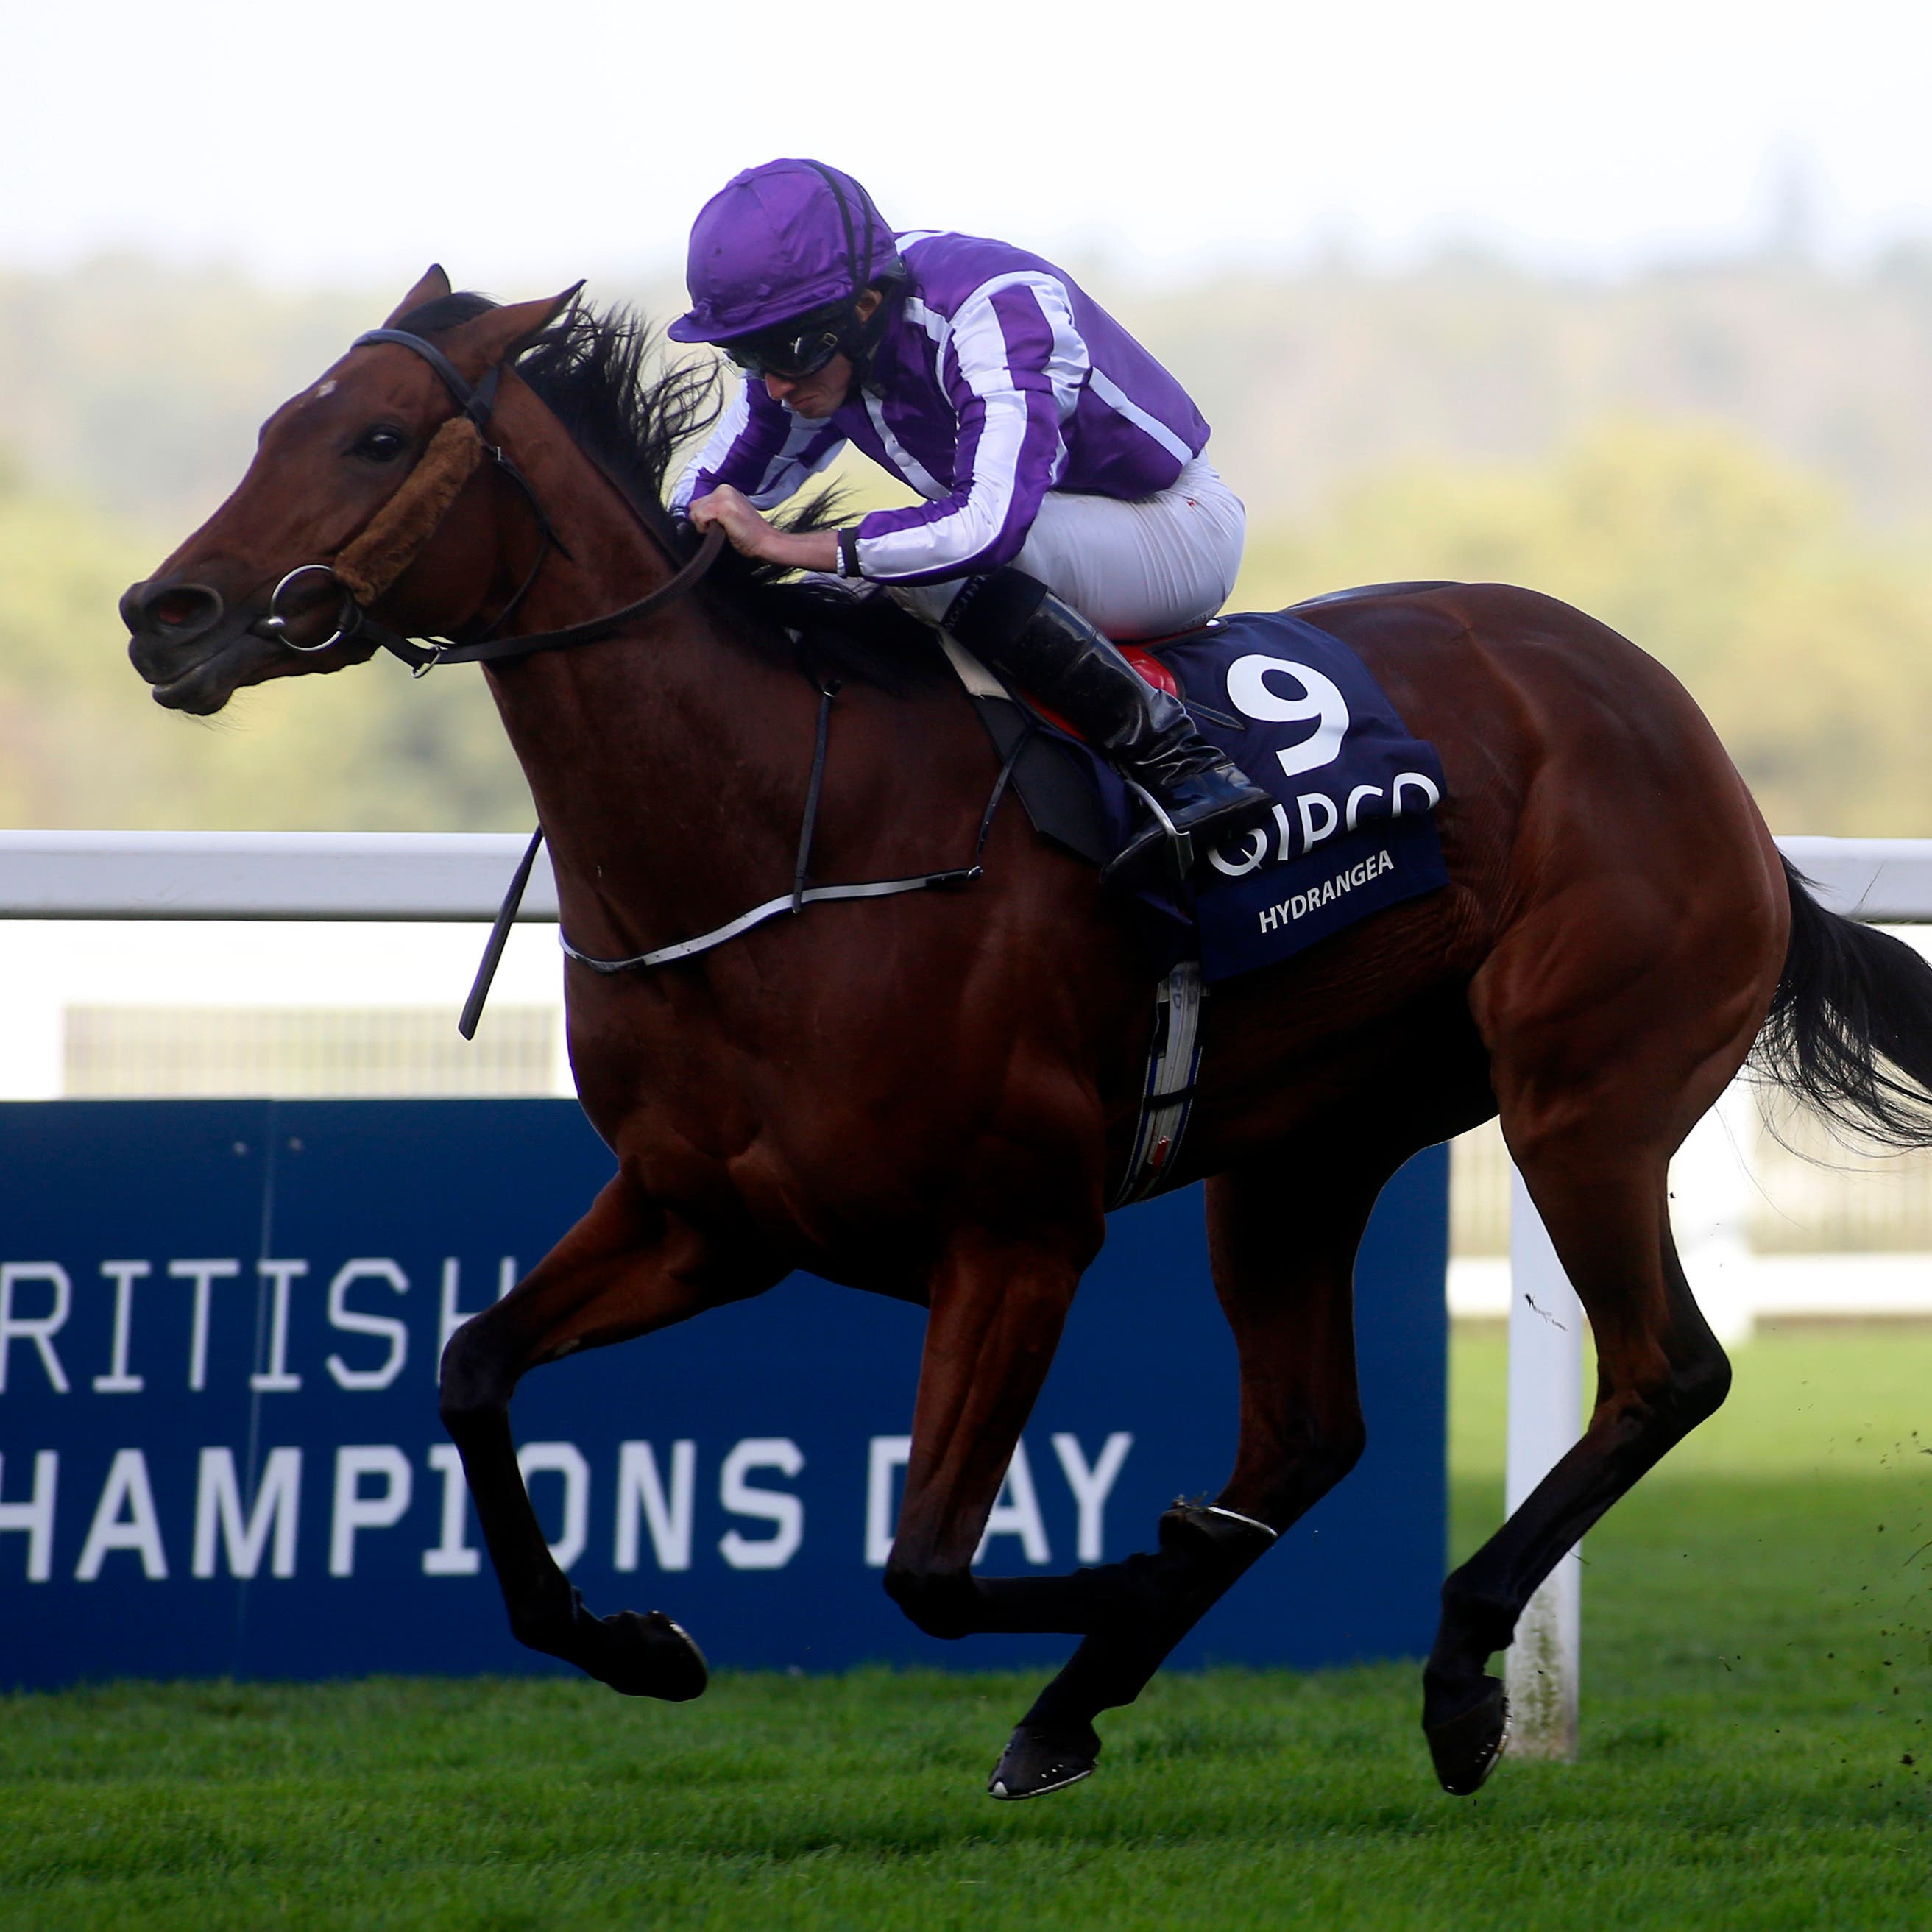 Hydrangea on her way to winning the Qipco British Champions Fillies & Mares Stakes at Ascot last year